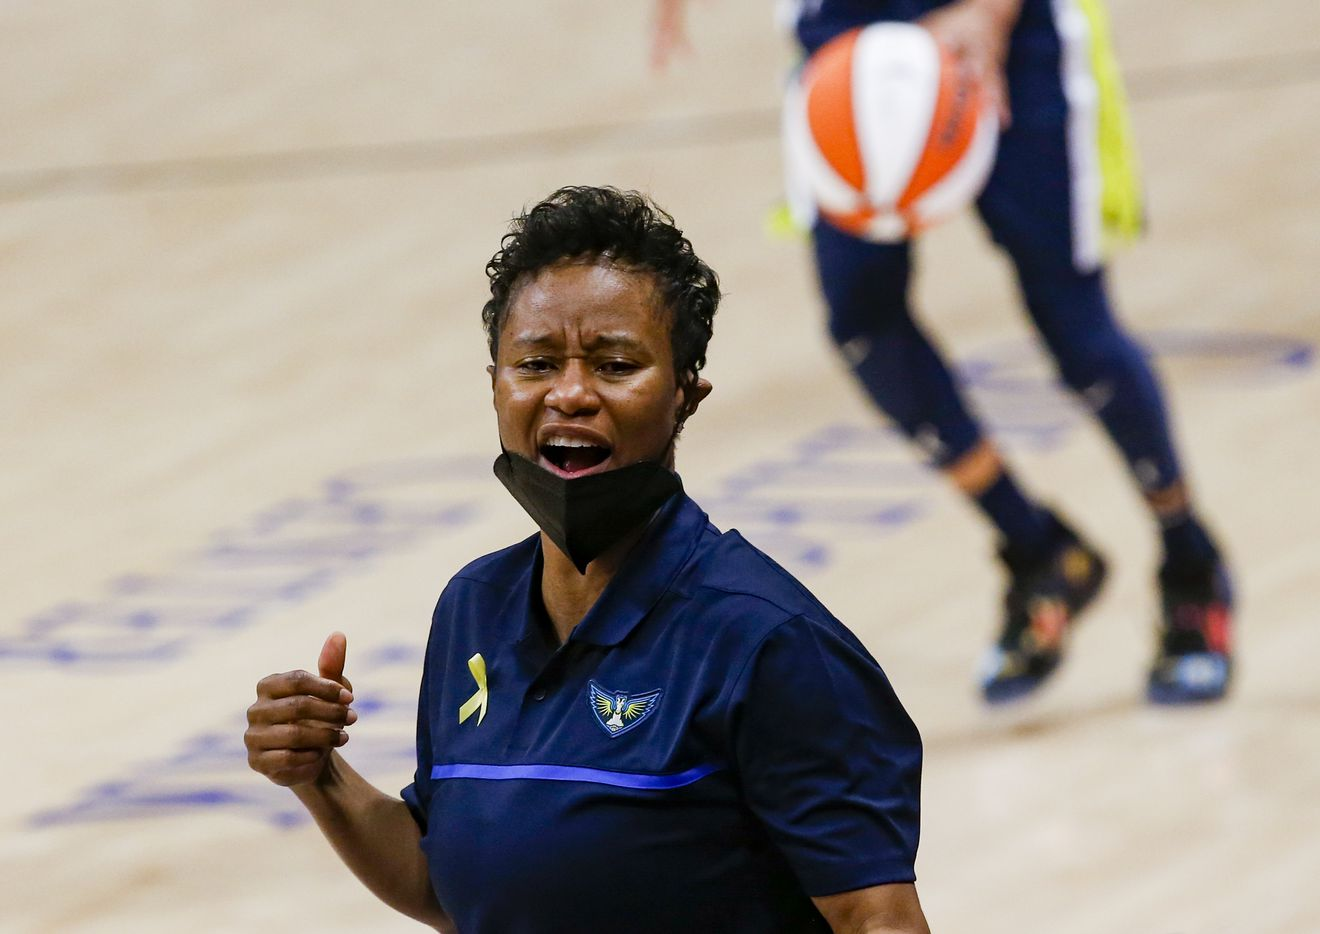 Dallas Wings coach Vickie Johnson on the sideline during the second quarter against the Los Angeles Sparks at College Park Center on Tuesday, June 1, 2021, in Arlington. (Juan Figueroa/The Dallas Morning News)